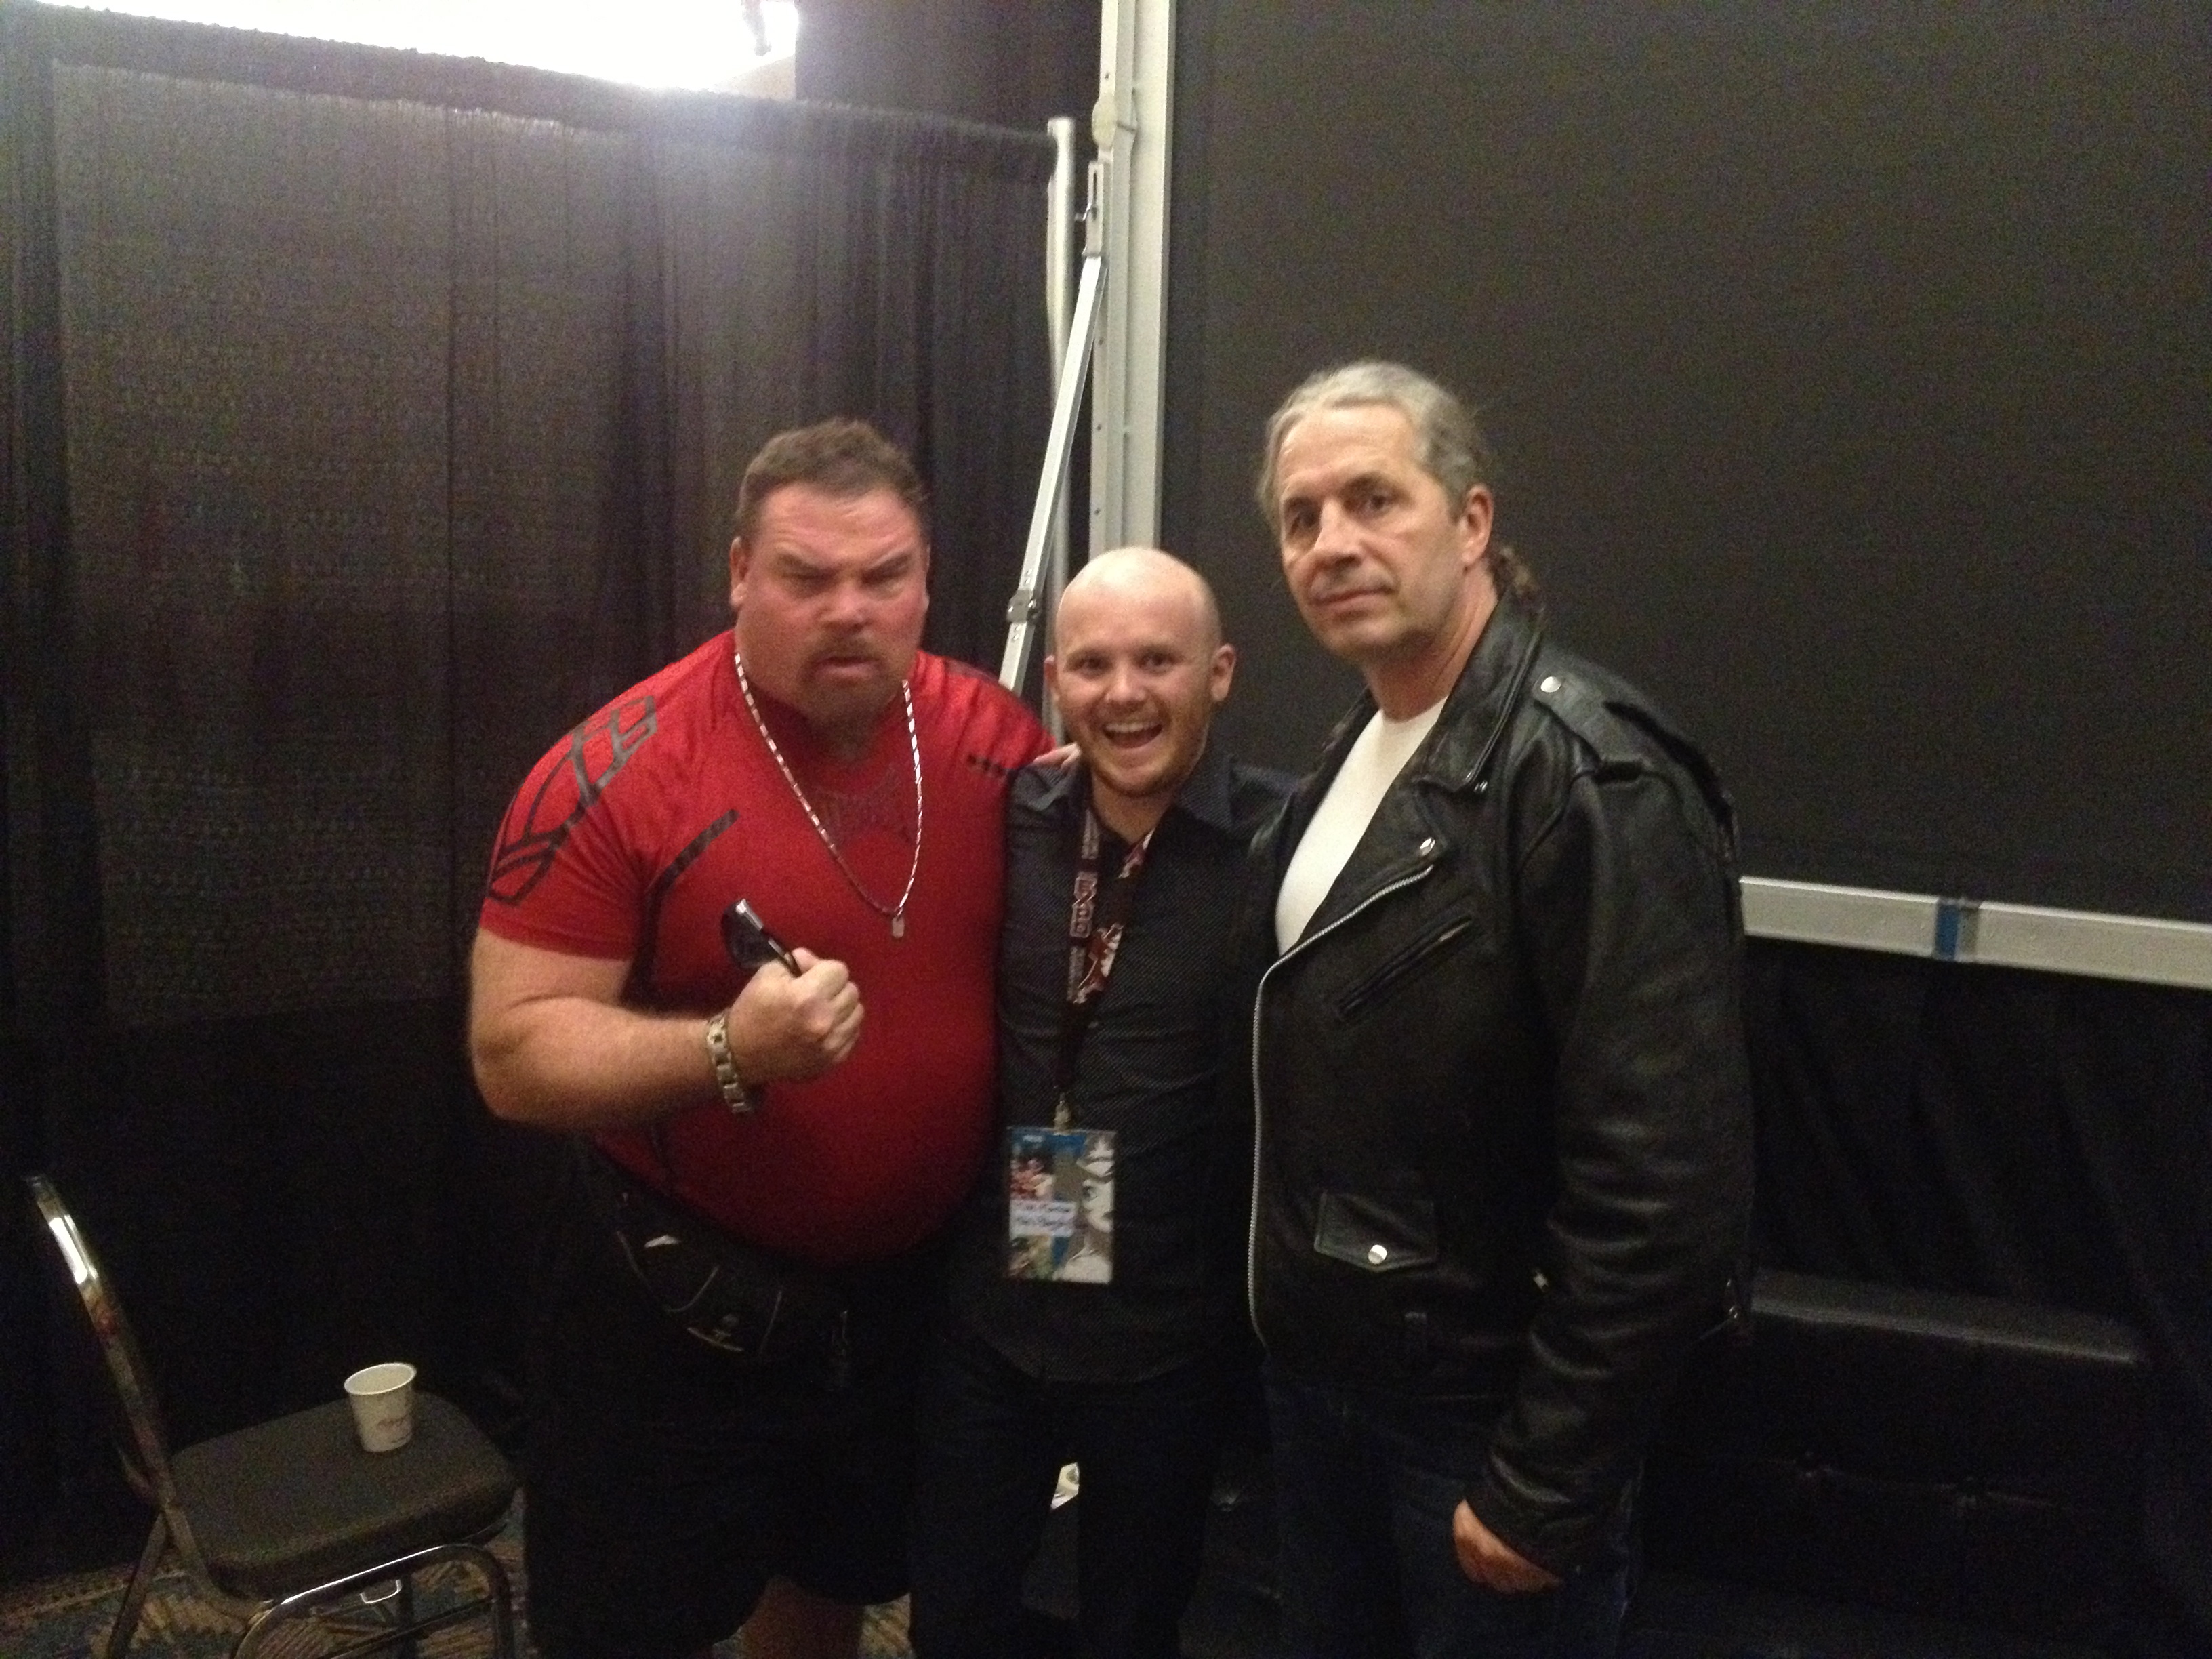 Video: Moderating The Hart Foundation panel at Calgary Expo!